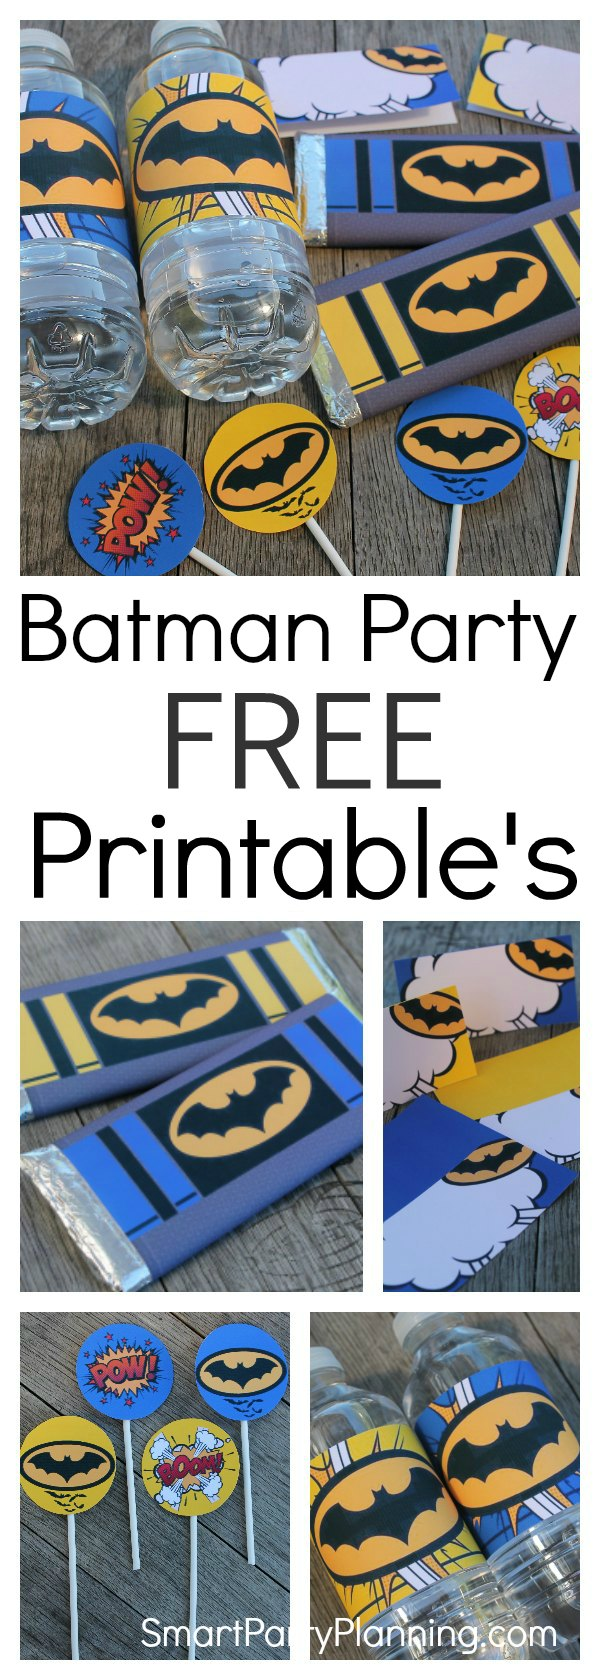 image relating to Free Superhero Party Printable titled Free of charge Batman Printables your tiny Superheroes will appreciate